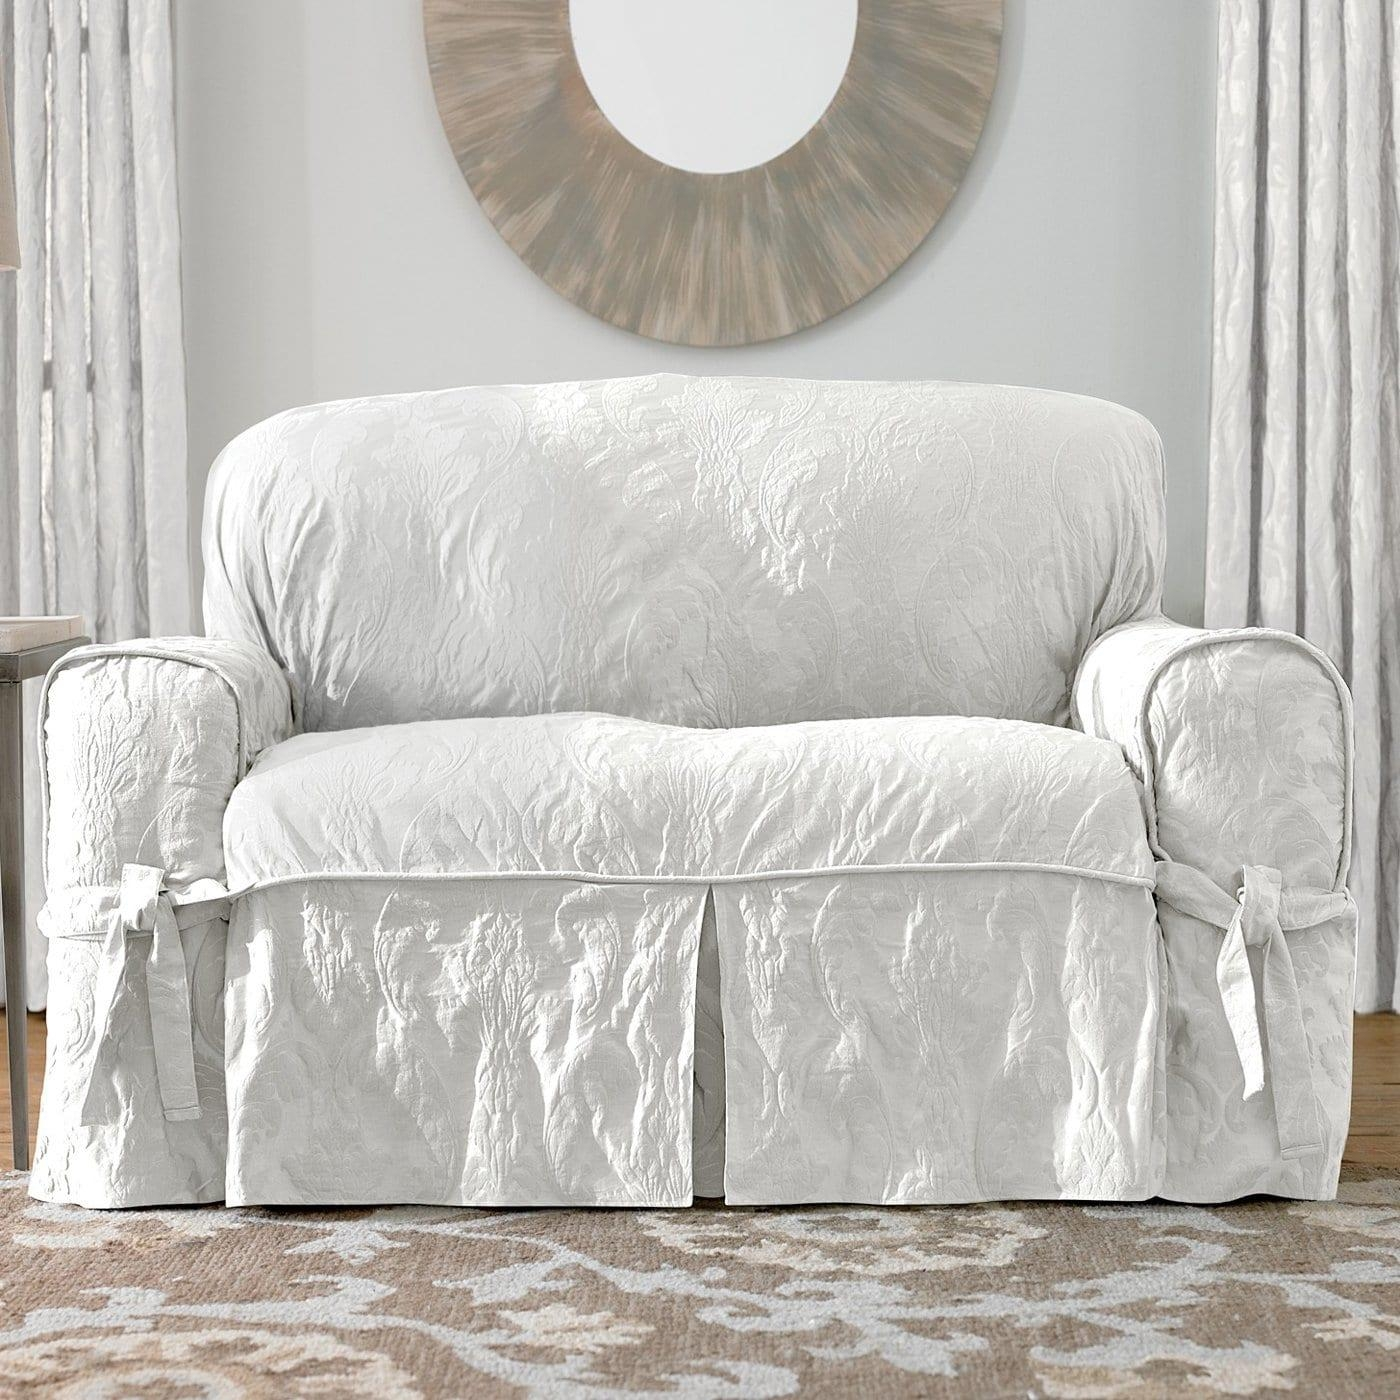 Sure Fit Slipcovers Matelassé Damask 1 Piece Sofa Slipcover | The Mine Regarding 2 Piece Sofa Covers (View 24 of 27)